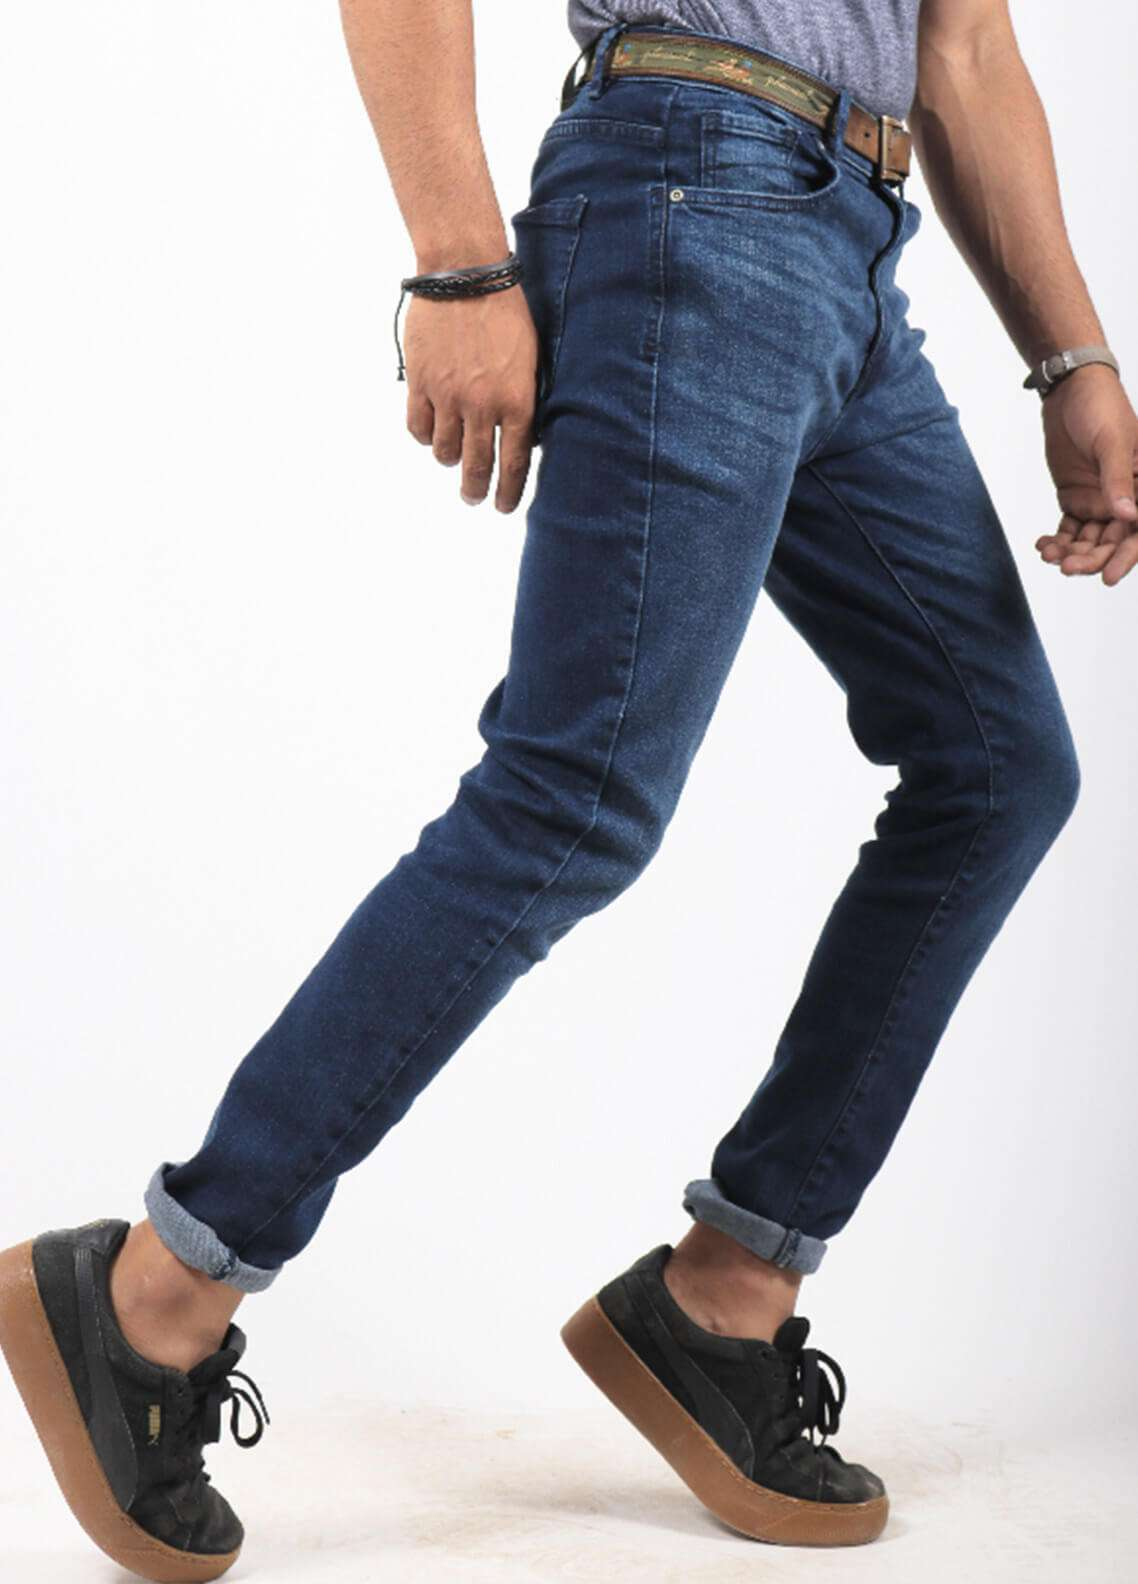 Red Tree Denim Casual Jeans for Men - Blue RTP164